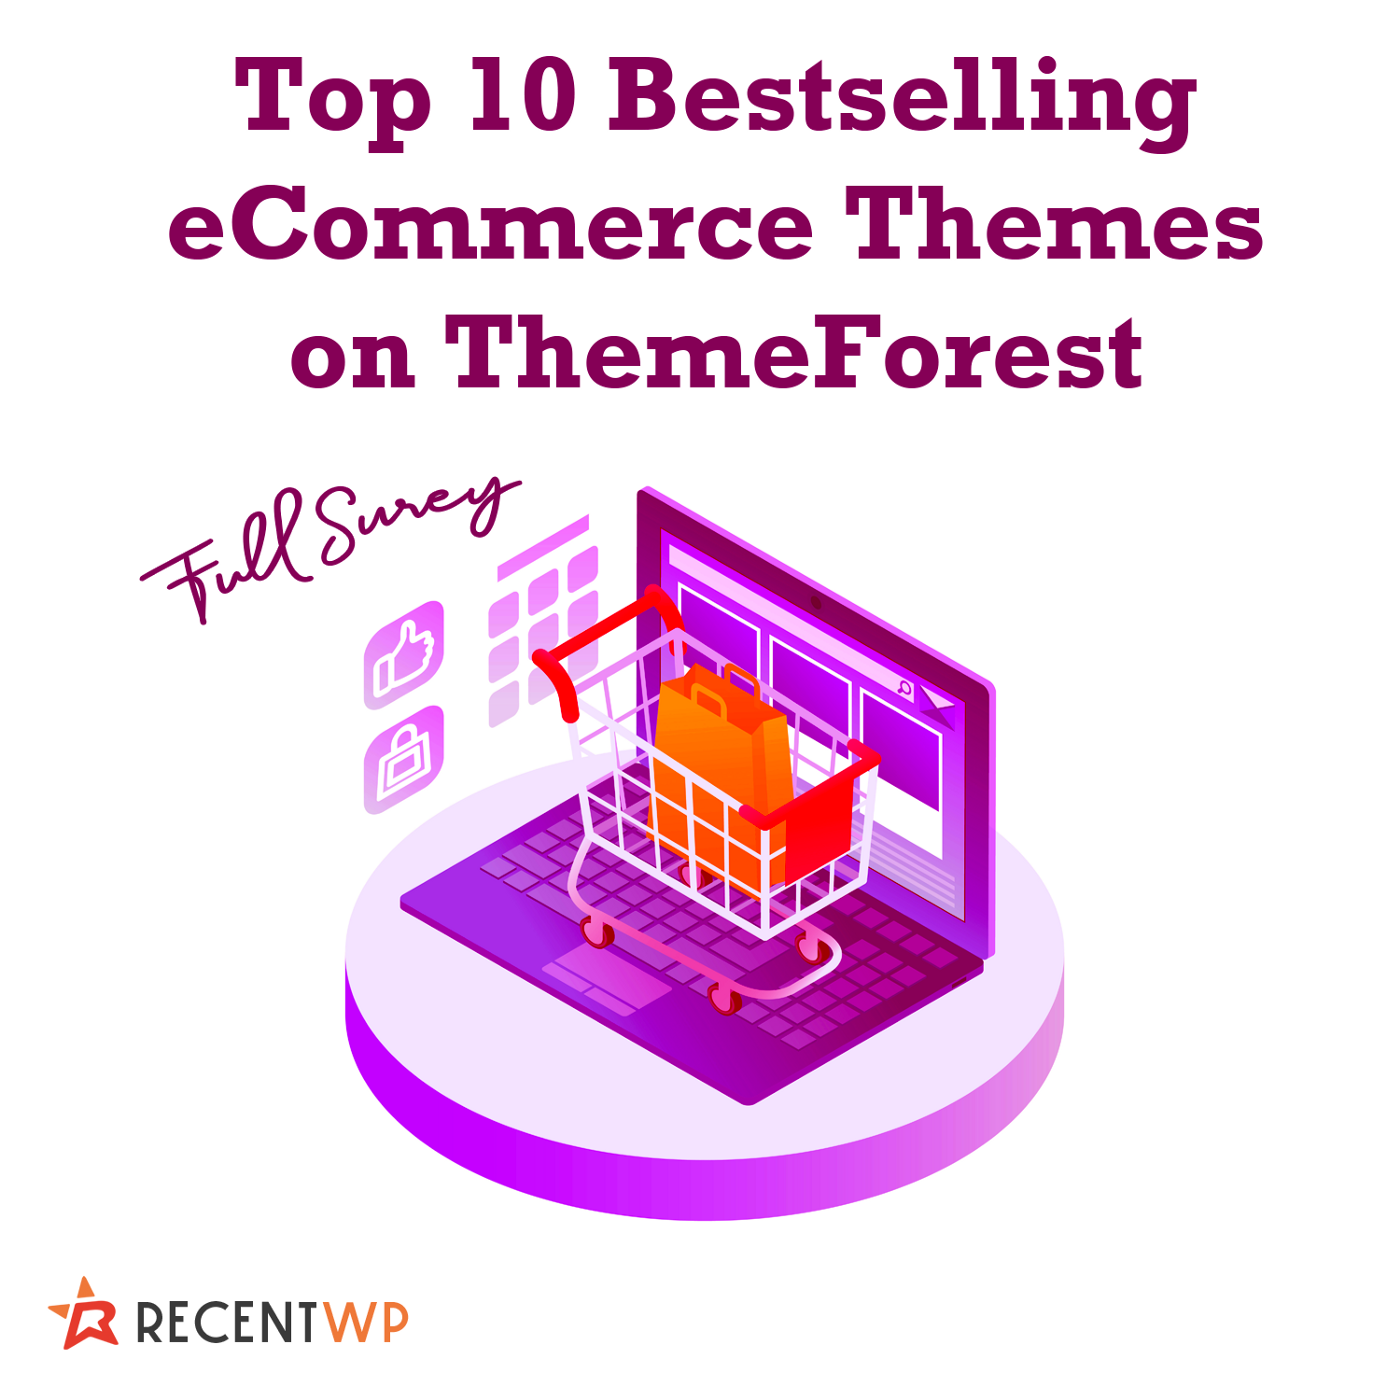 Do you need best eCommerce themes for your WordPress site? TOP 10